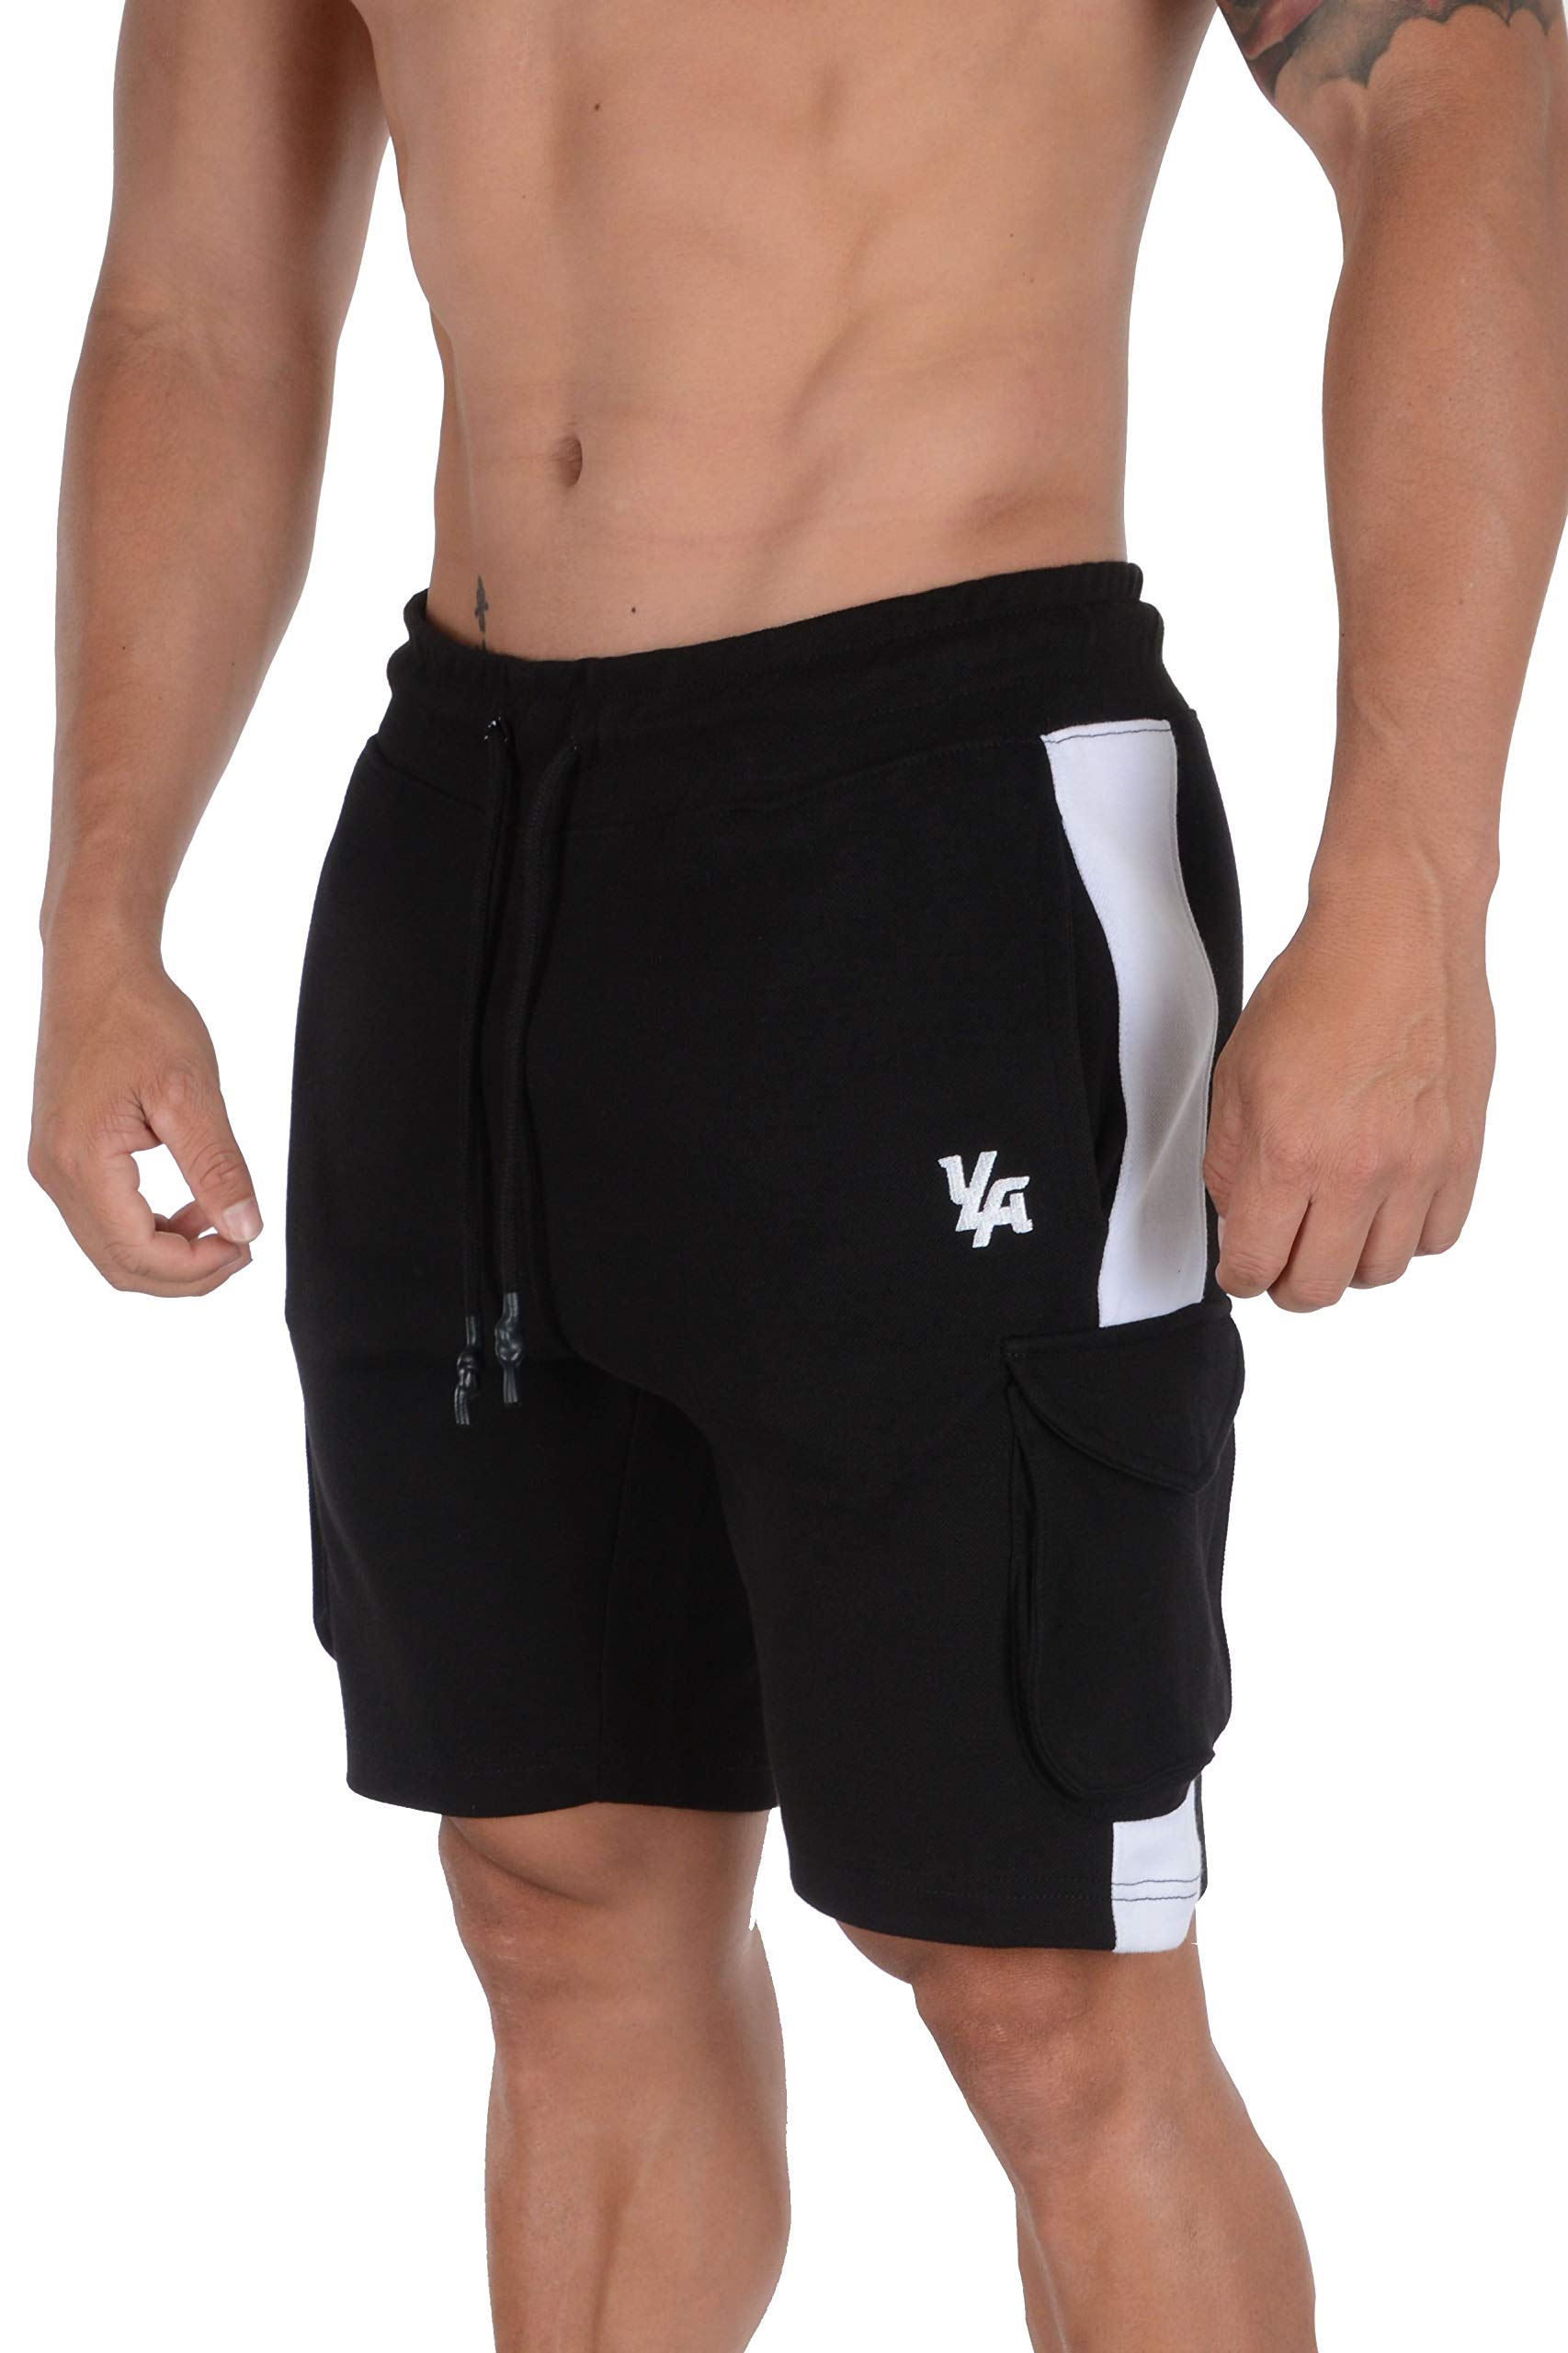 YoungLA Mens Cargo Gym Shorts Casual Workout Athletic Pockets 118 BWHT M Black/White